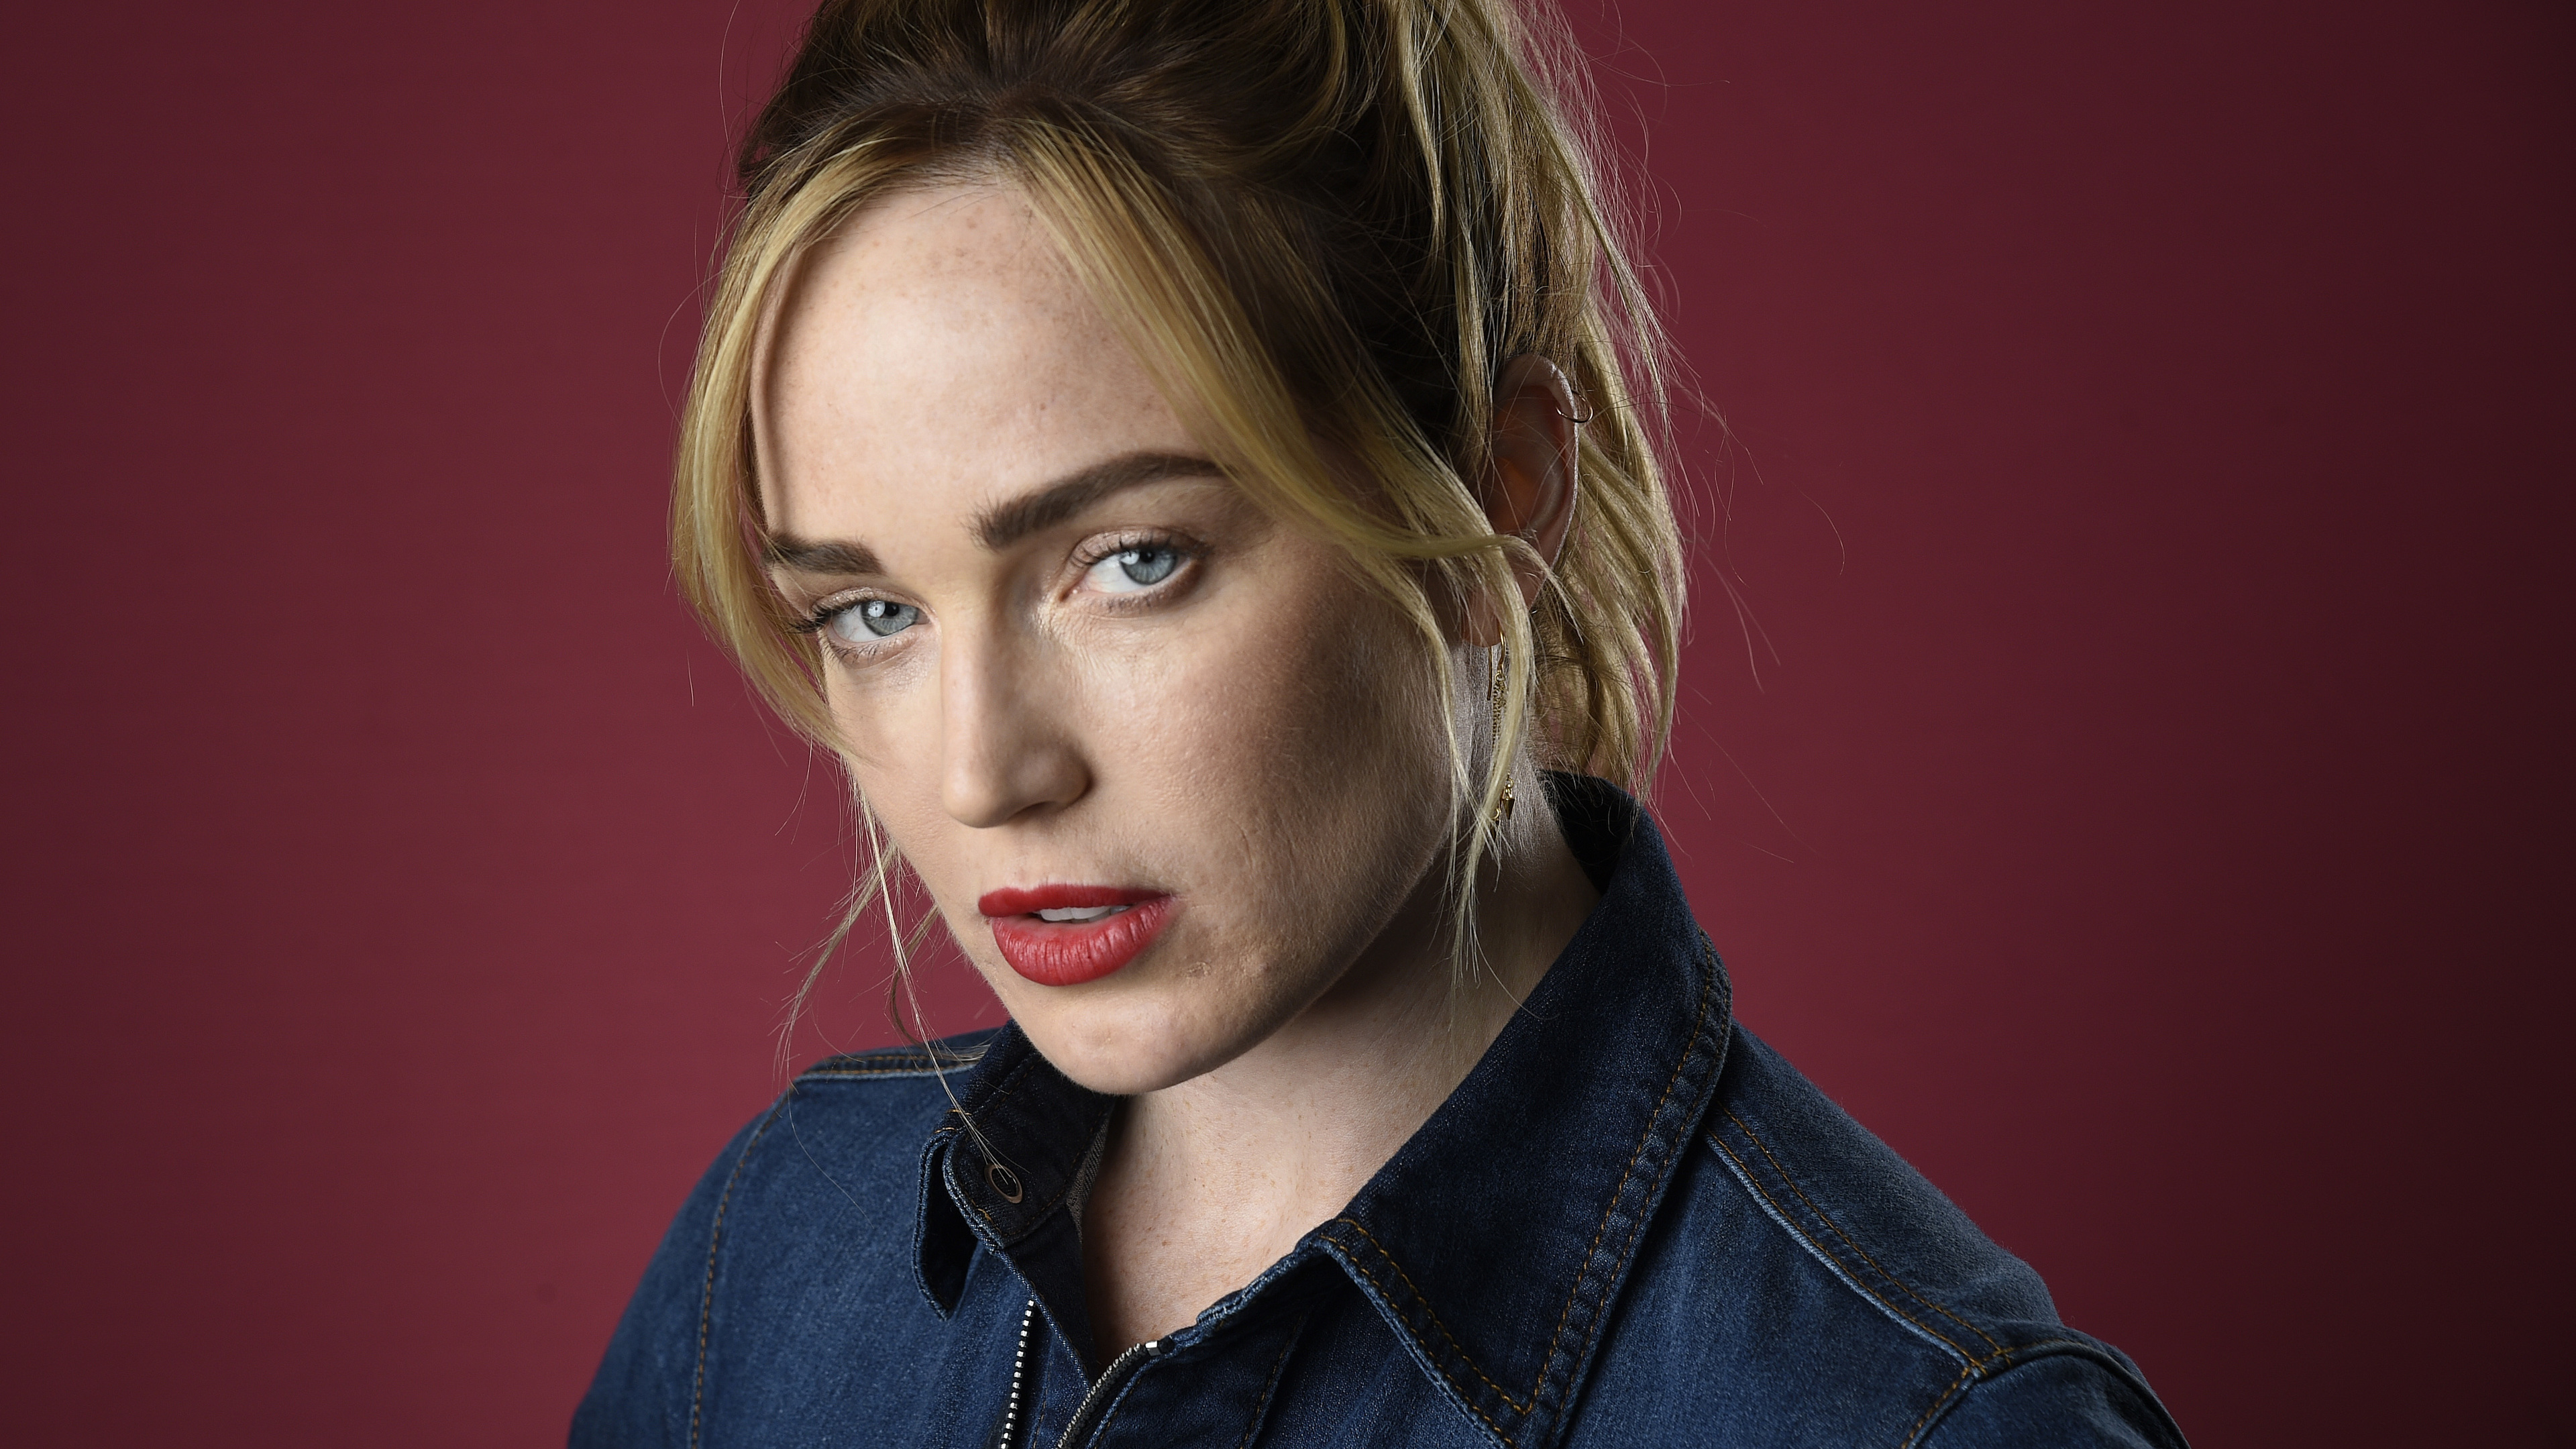 caity lotz 4k 2018 1536860512 - Caity Lotz 4k 2018 - tv shows wallpapers, legends of tomorrow wallpapers, hd-wallpapers, girls wallpapers, celebrities wallpapers, caity lotz wallpapers, 4k-wallpapers